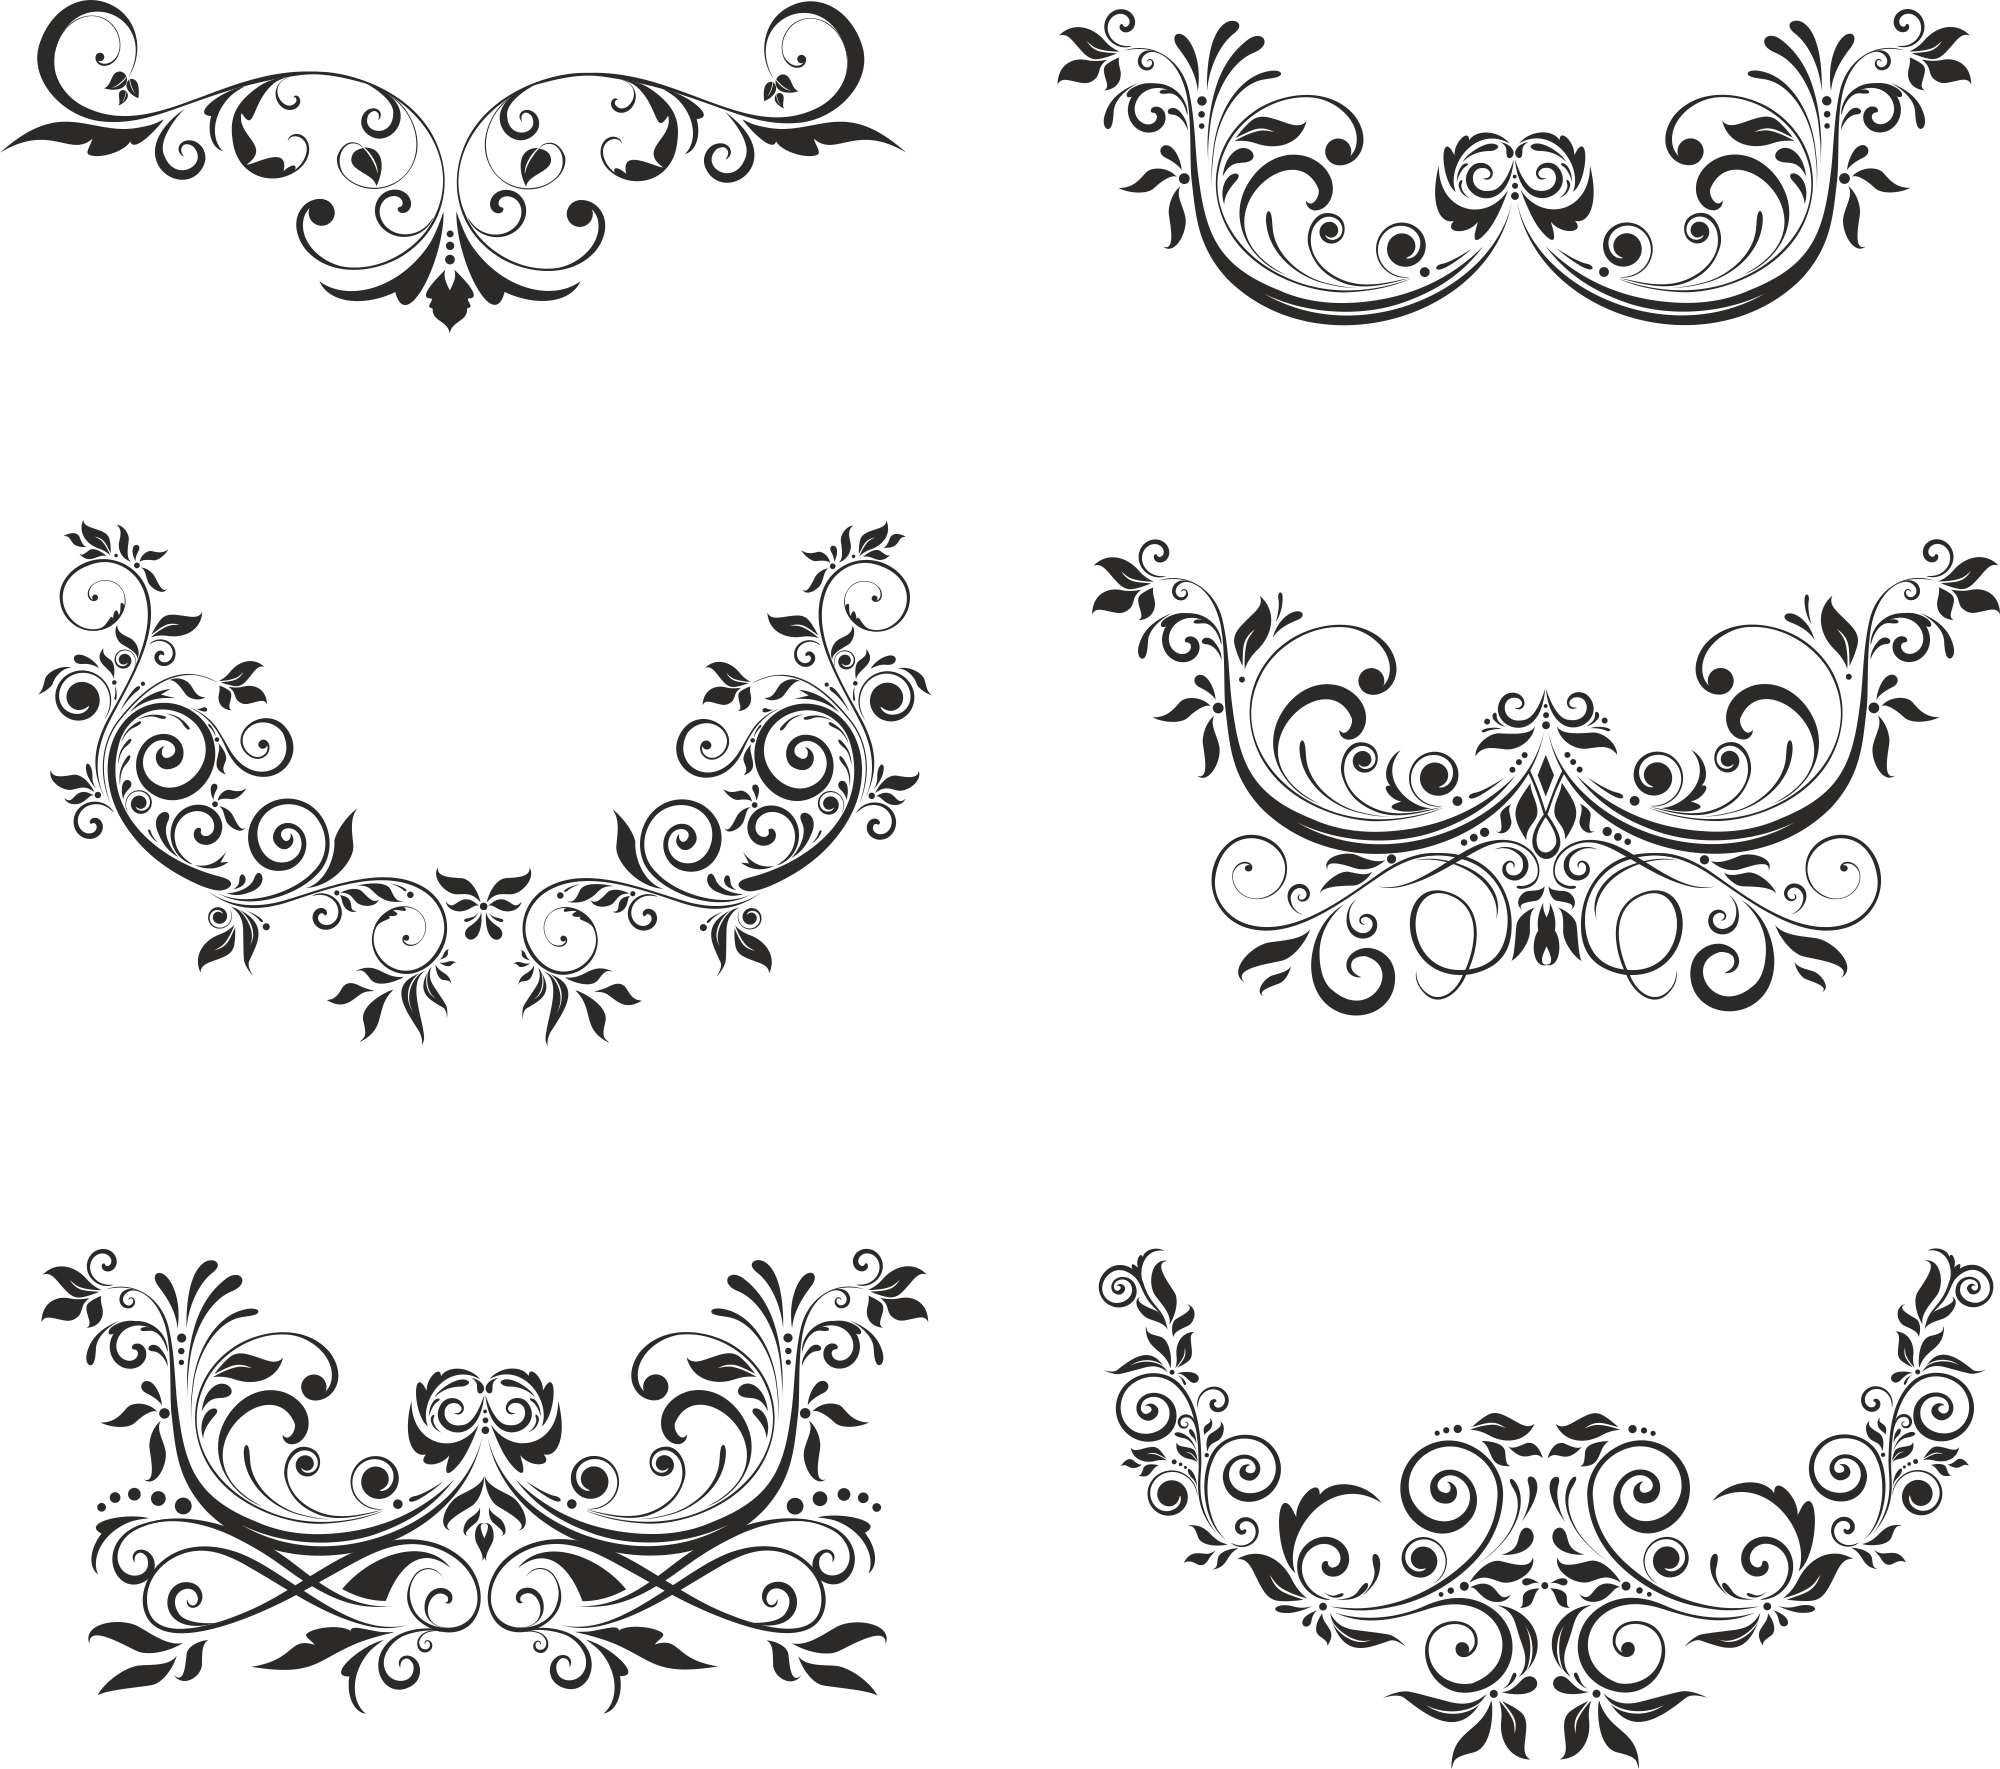 Floral Elements Free Vector Cdr Download